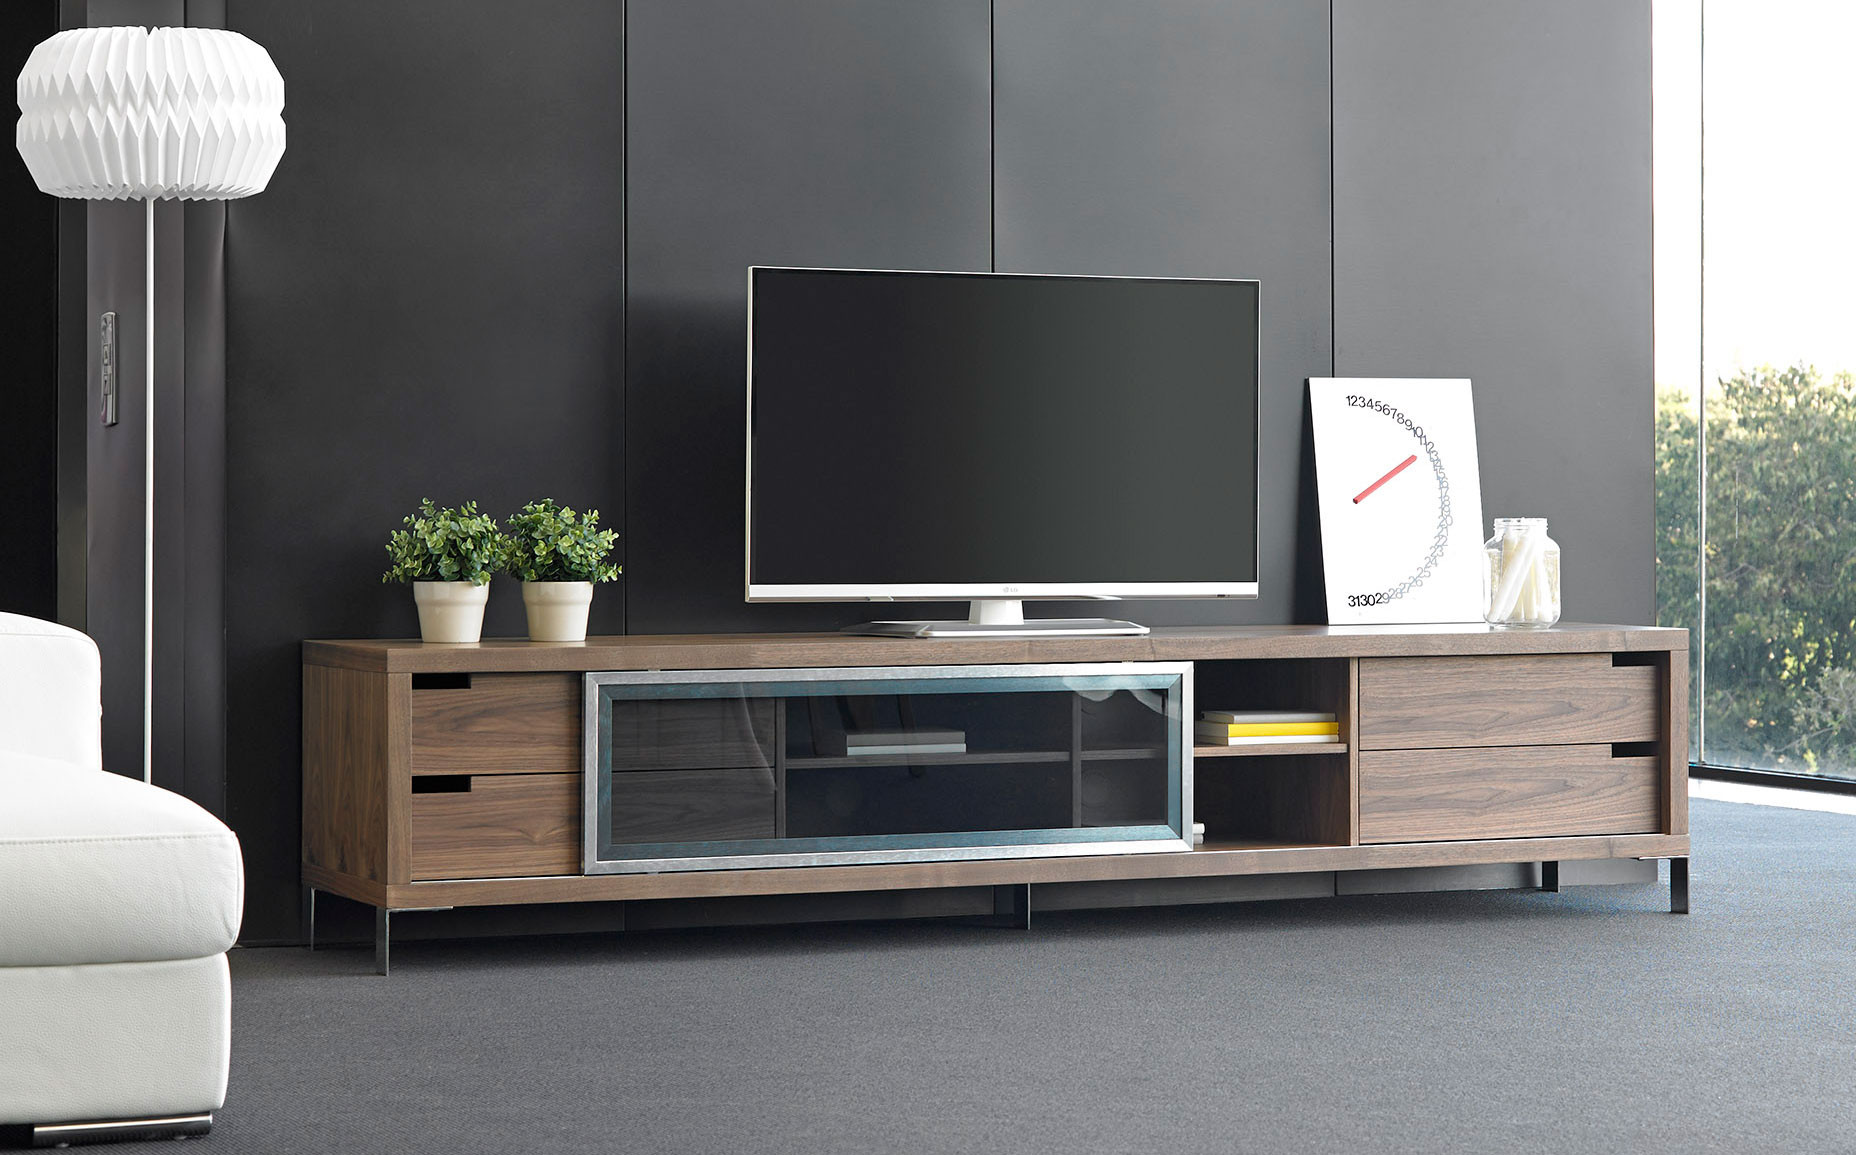 Muebles Para Tv Modernos Gran Mueble Tv Moderno Tana En Portobellostreet Of Muebles Para Tv Modernos Contemporáneo 1000 Ideas About Tv Rack On Pinterest